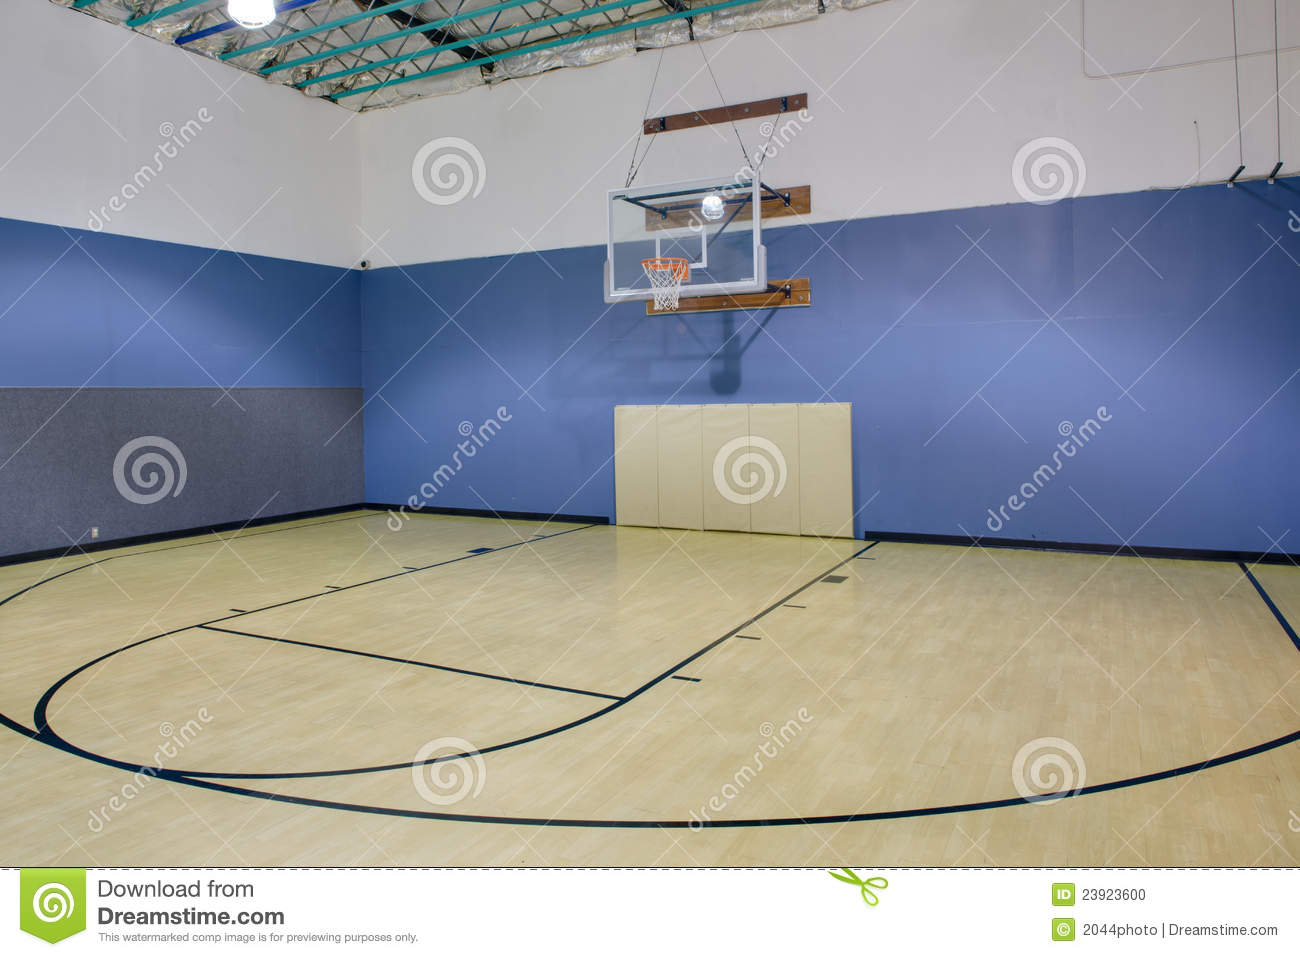 Indoor basketball court stock photo. Image of sports - 23923600